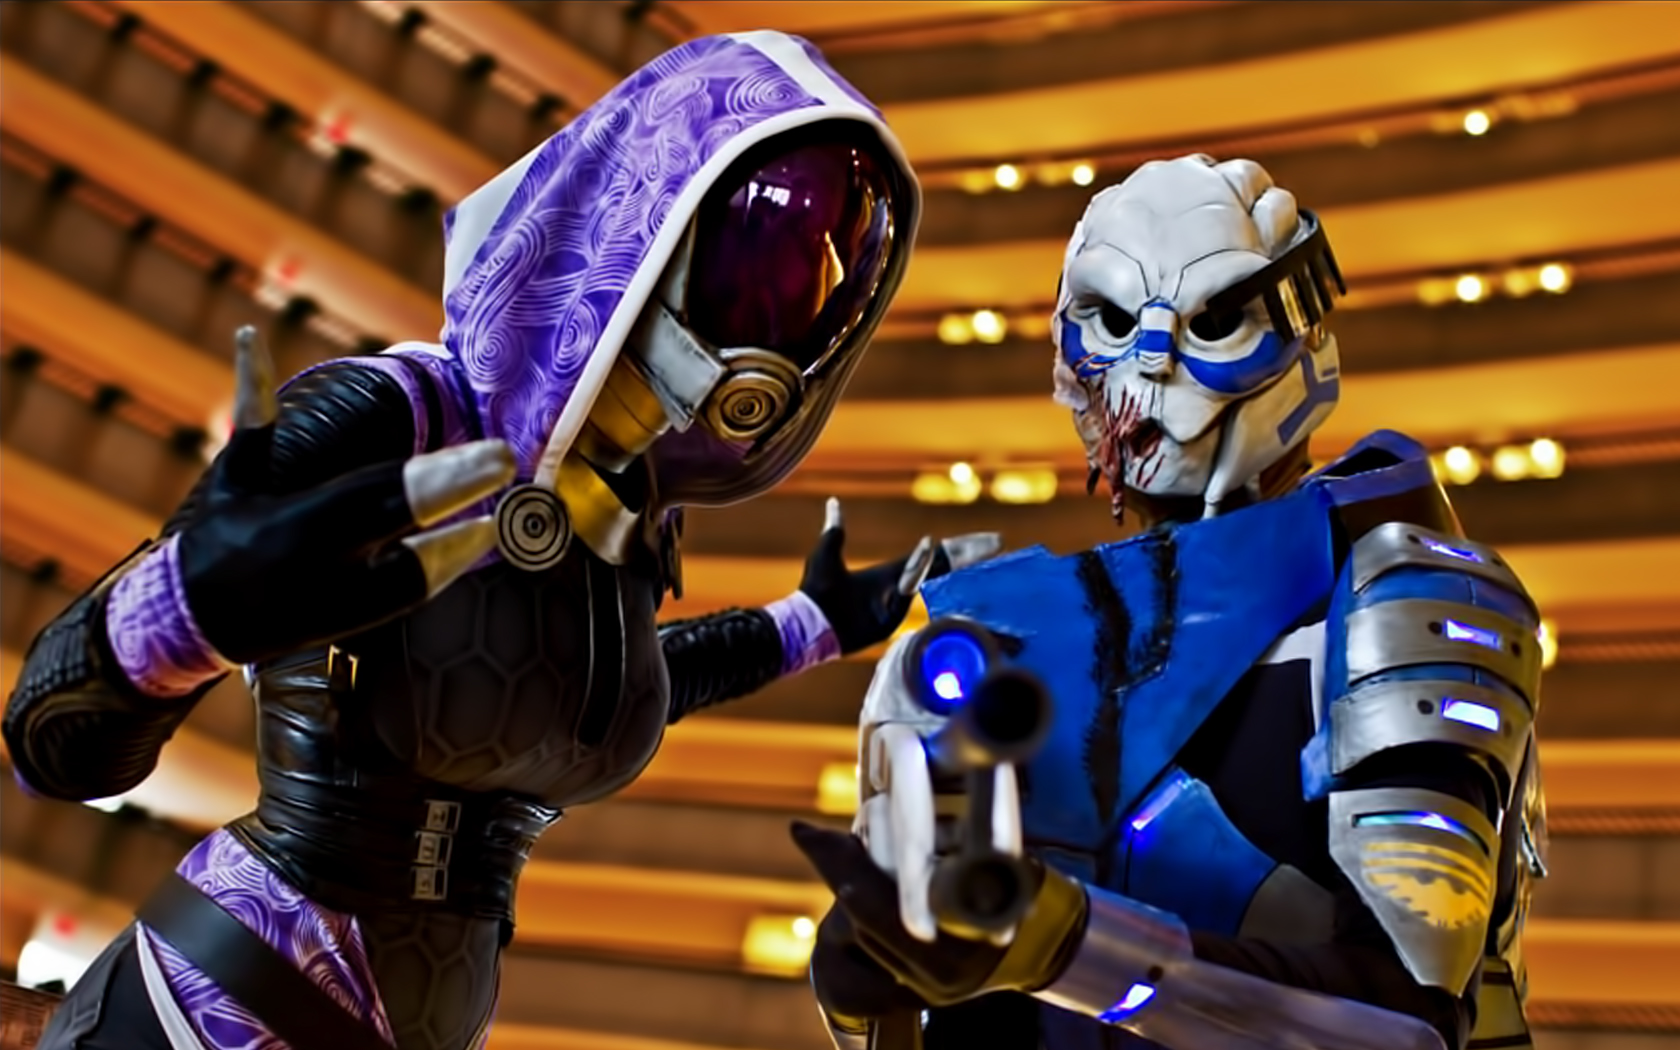 Video Game - Mass Effect  Tali'Zorah Garrus Vakarian Wallpaper